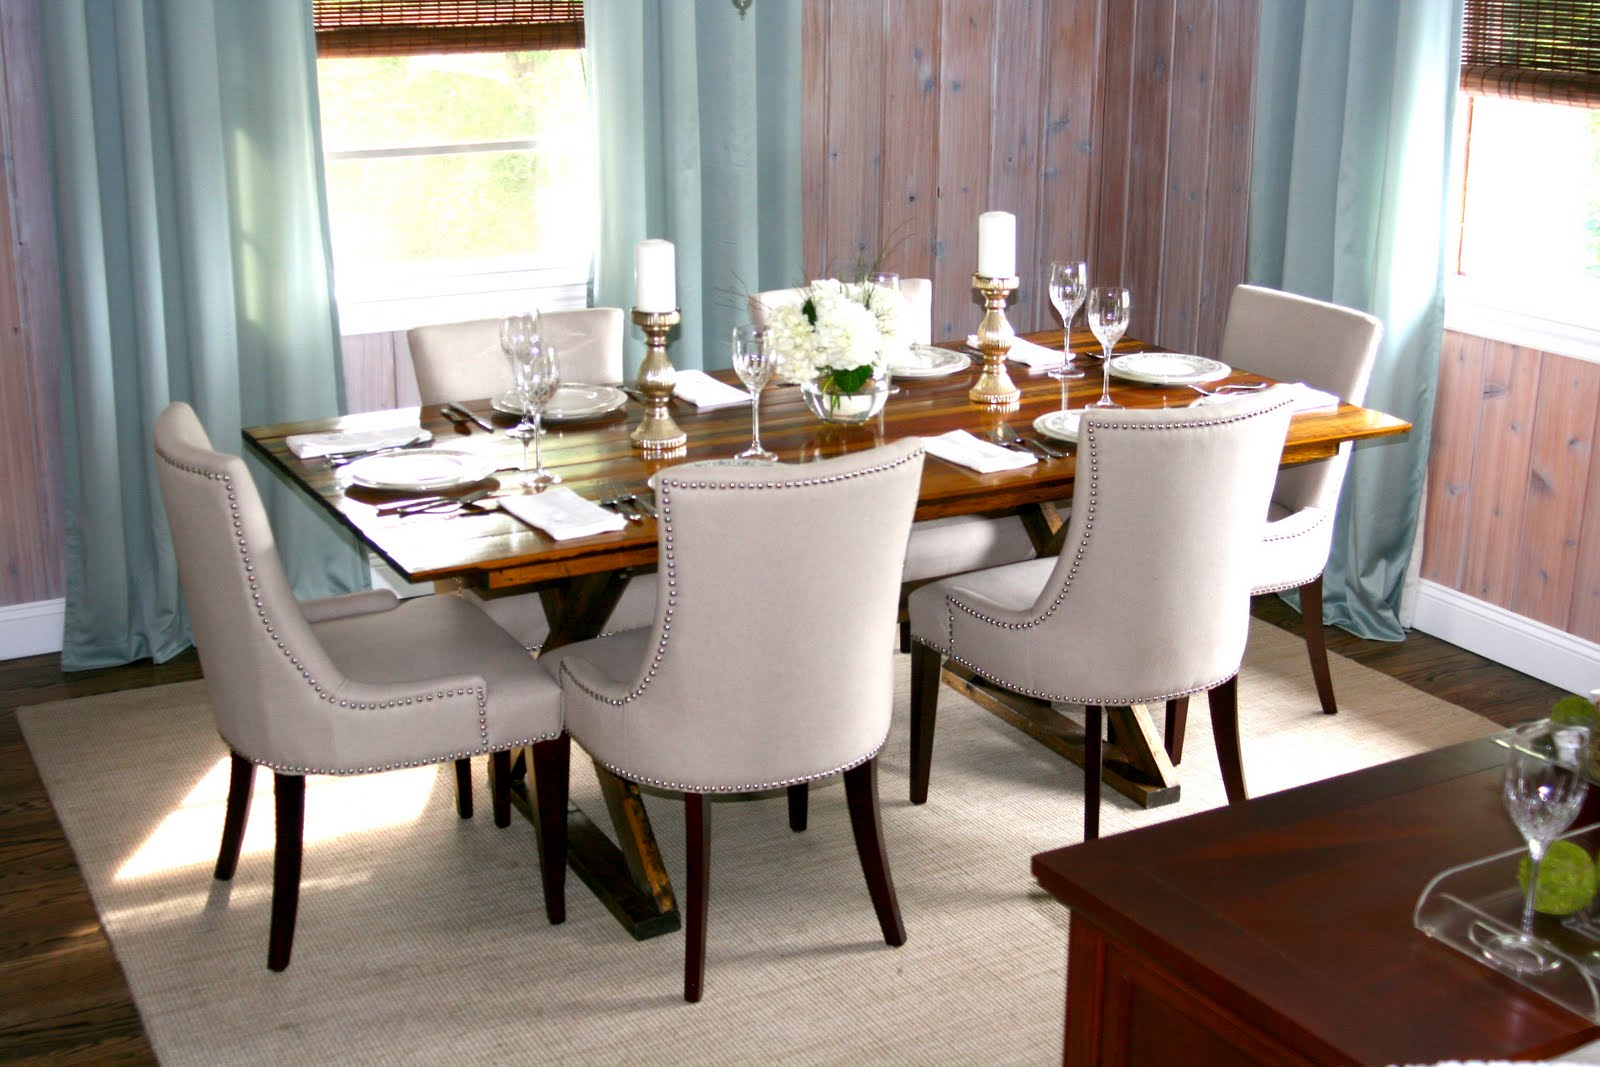 justatouchofgray blogspot gray kitchen table Dining Room